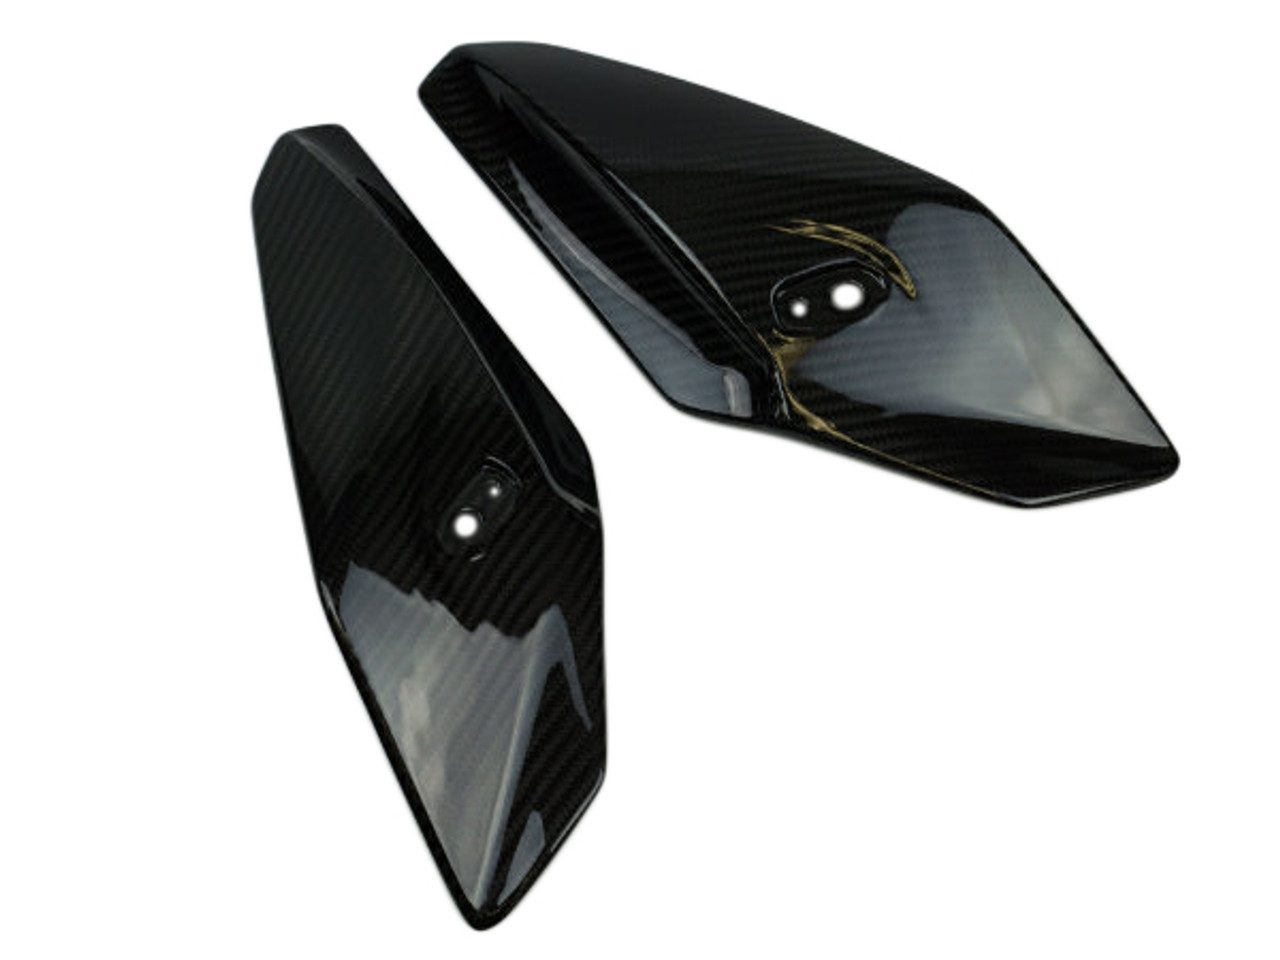 Upper Fairing Sides in Glossy Twill Weave Carbon Fiber for BMW S1000R 2014+